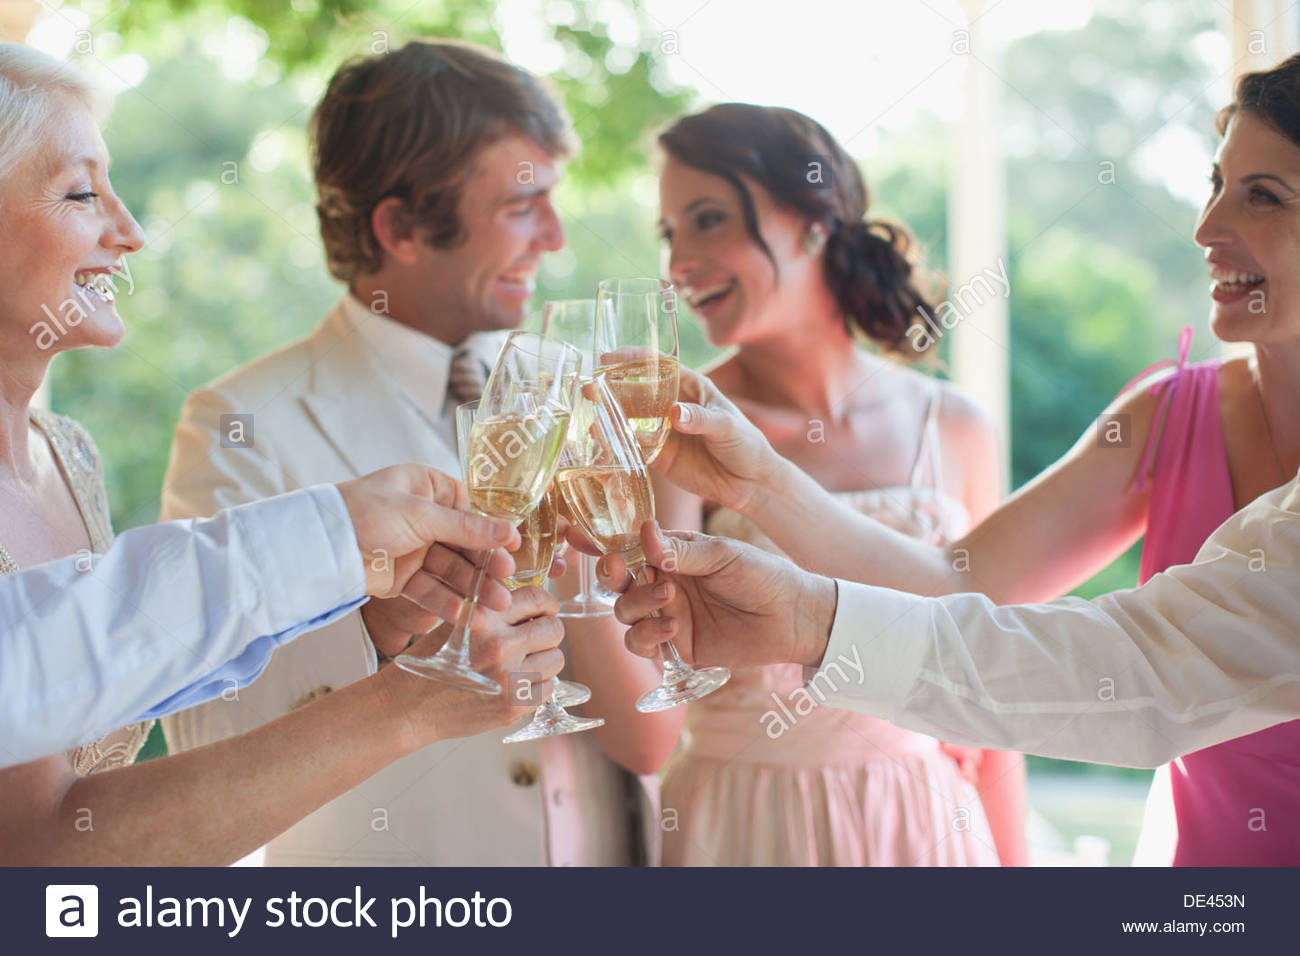 Guests toasting with champagne at wedding reception Stock Photo